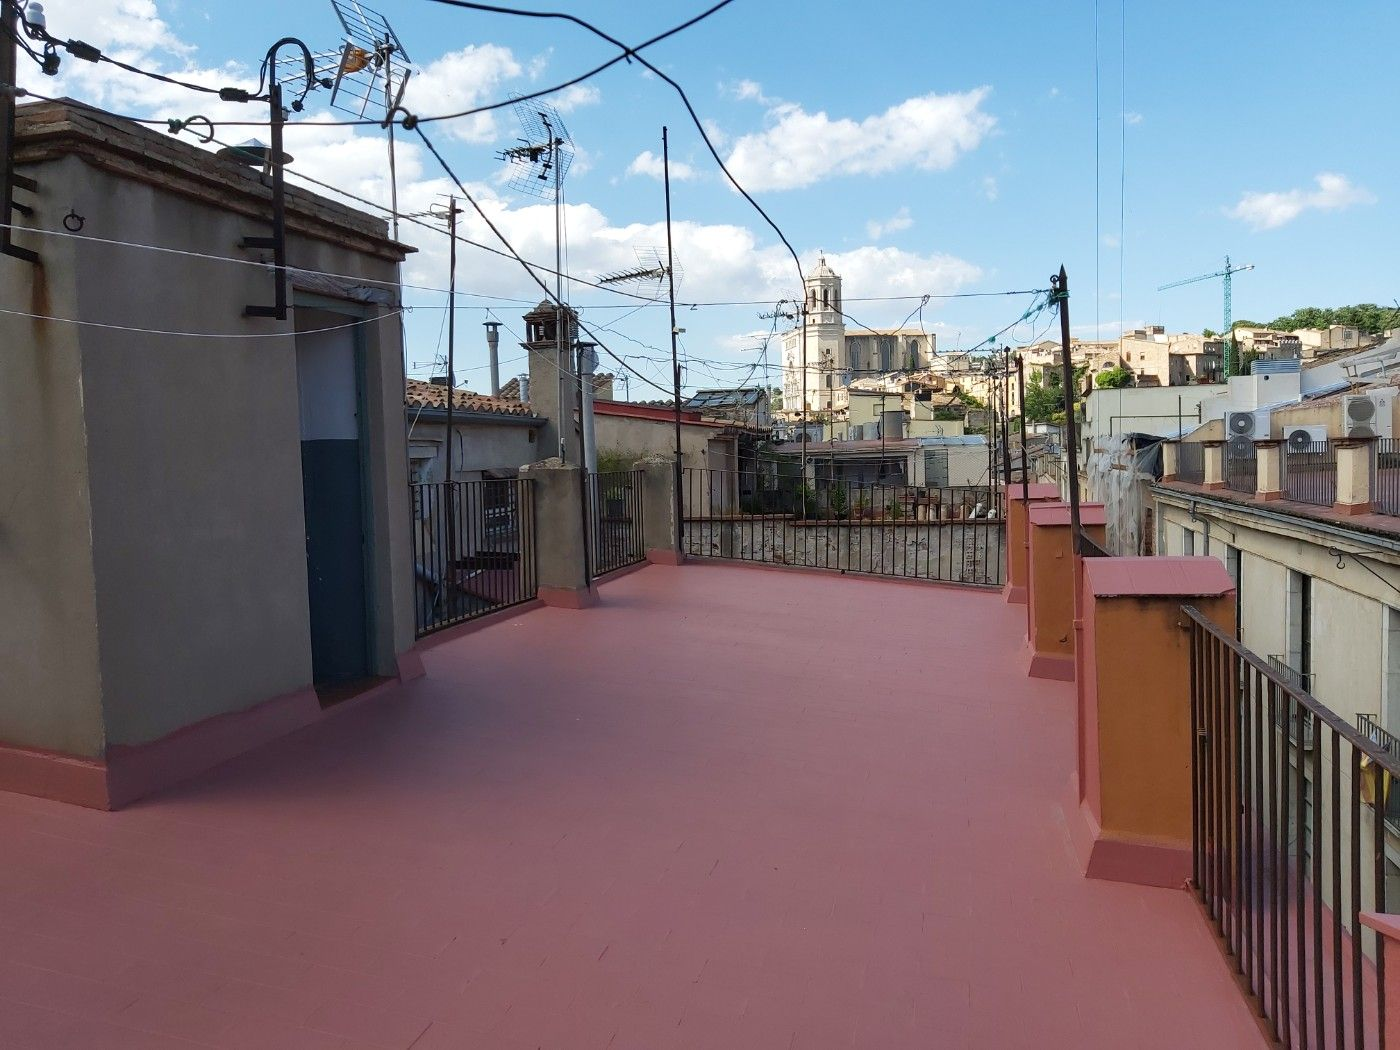 Rent Apartment in Carrer mercaders, 3. Pis de 3 habts al c. mercaders